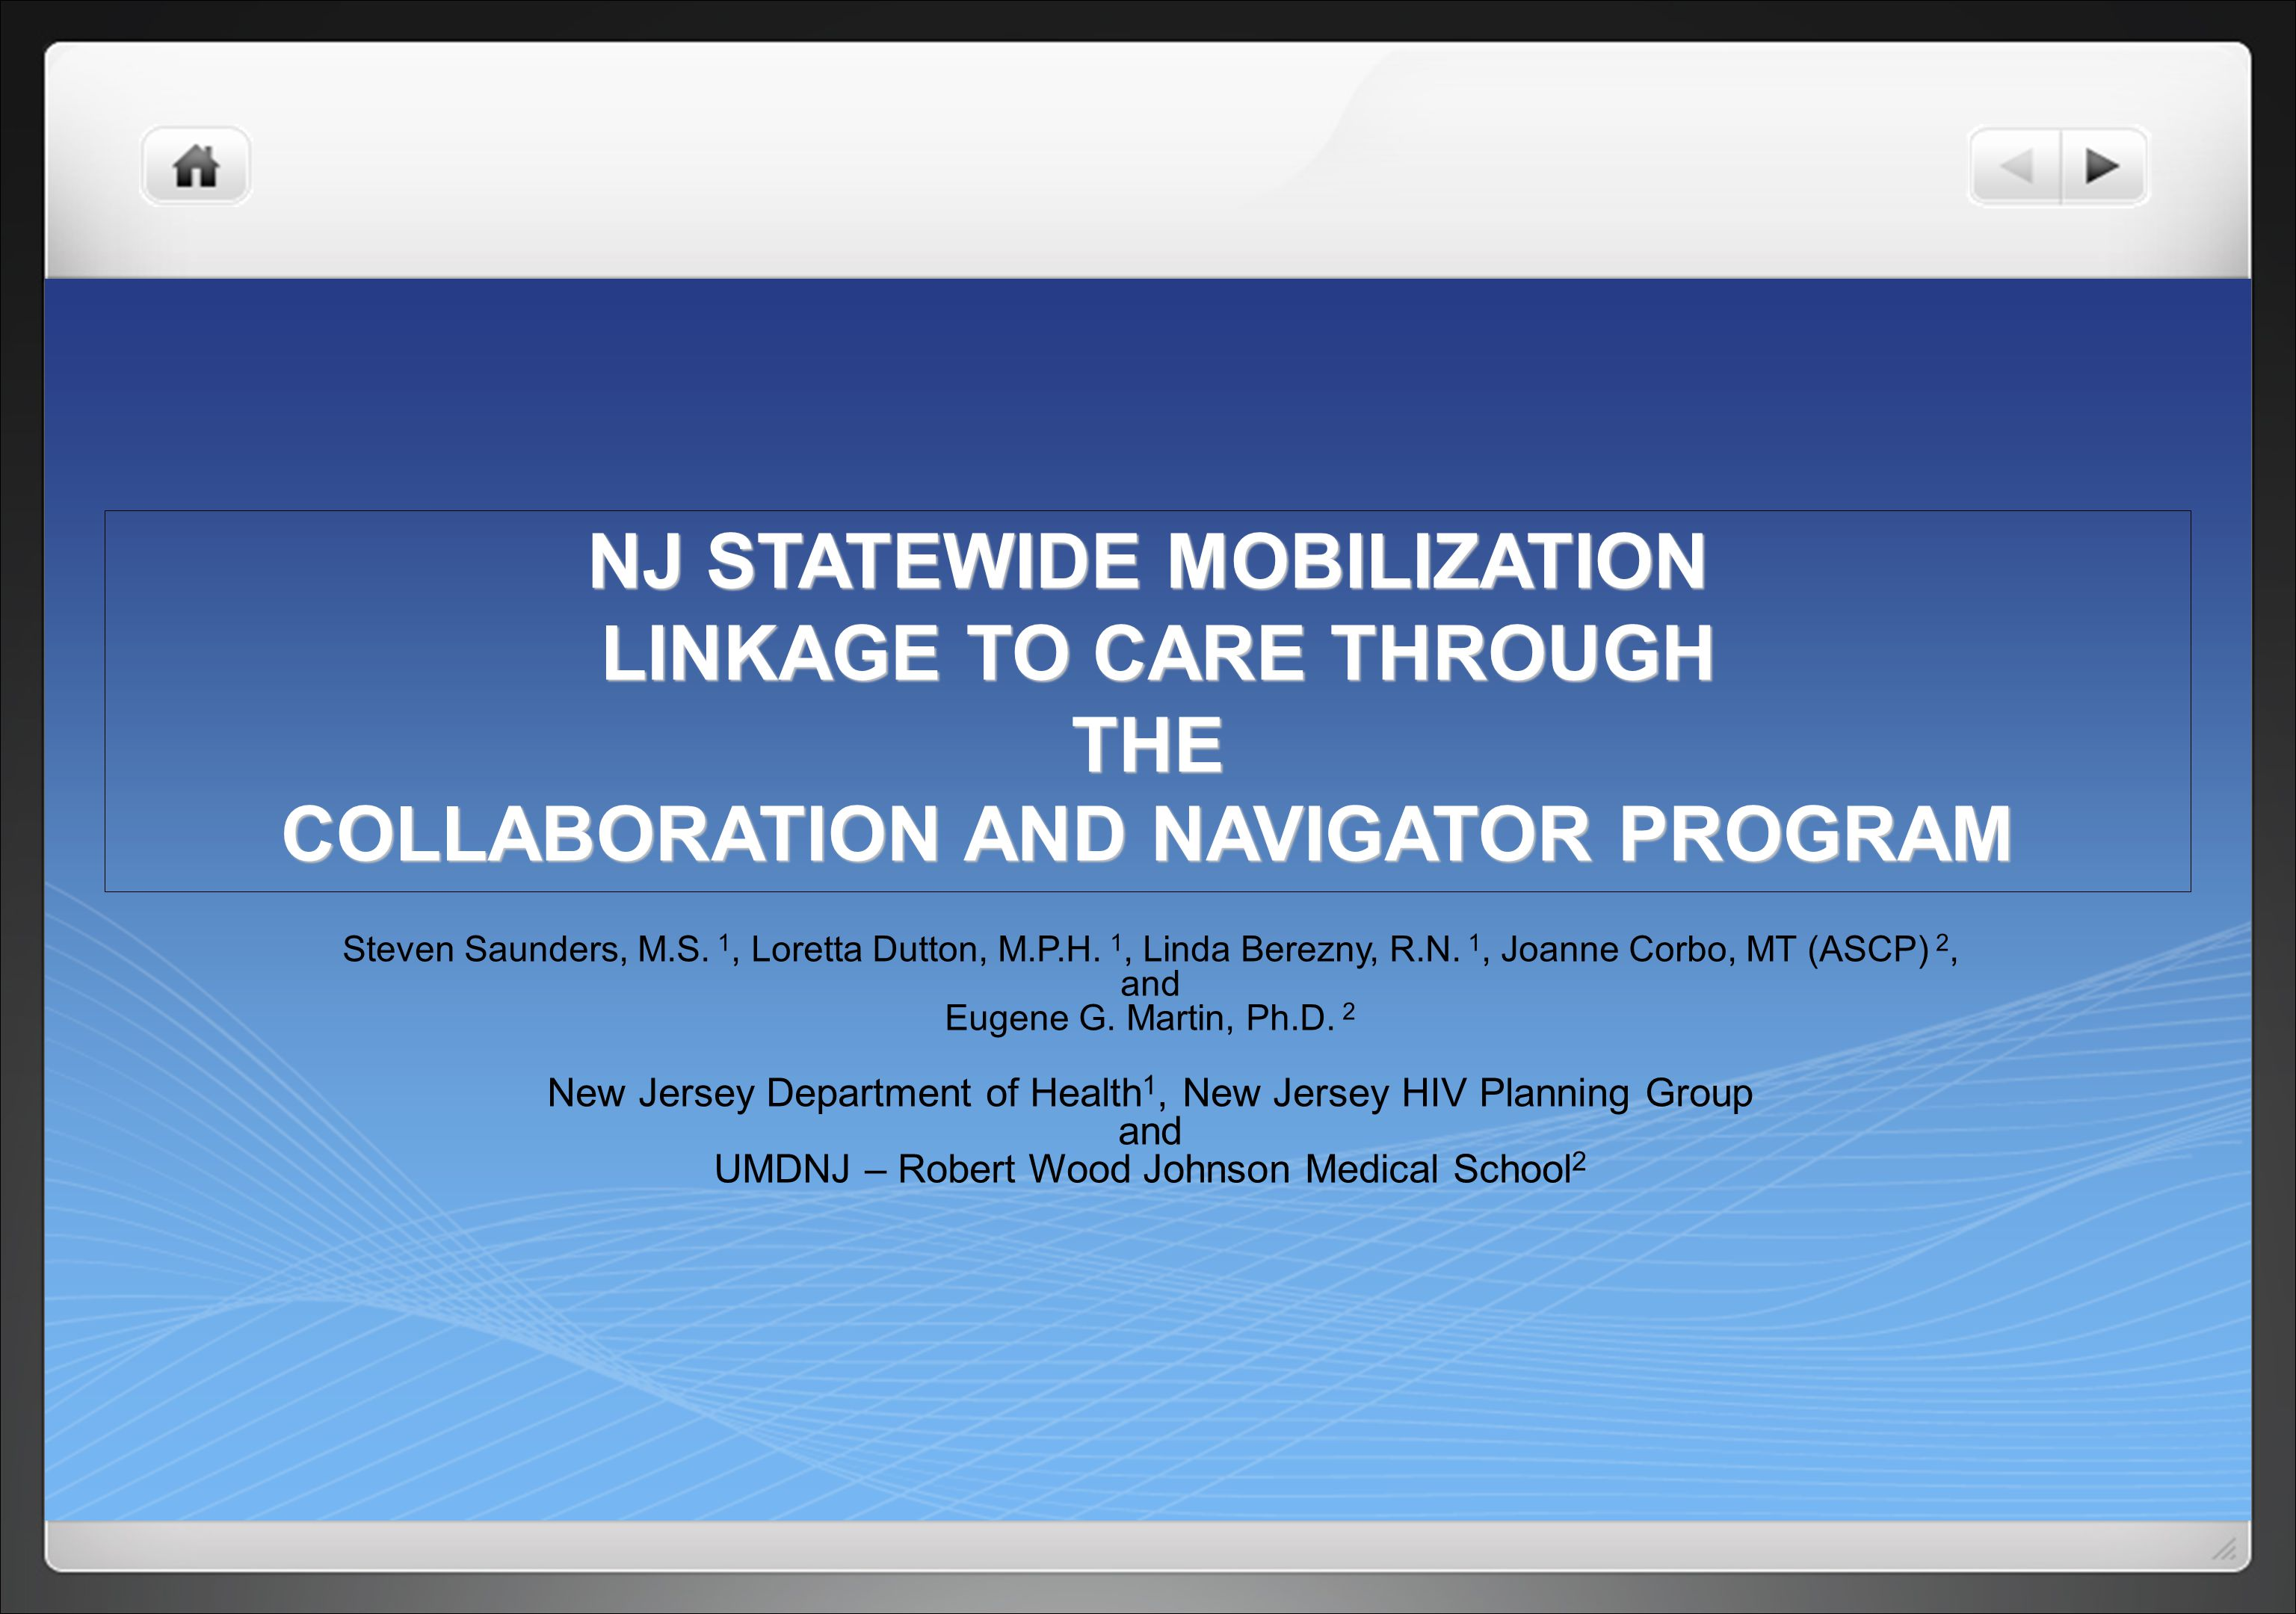 NJ STATEWIDE MOBILIZATION LINKAGE TO CARE THROUGH THE COLLABORATION AND NAVIGATOR PROGRAM